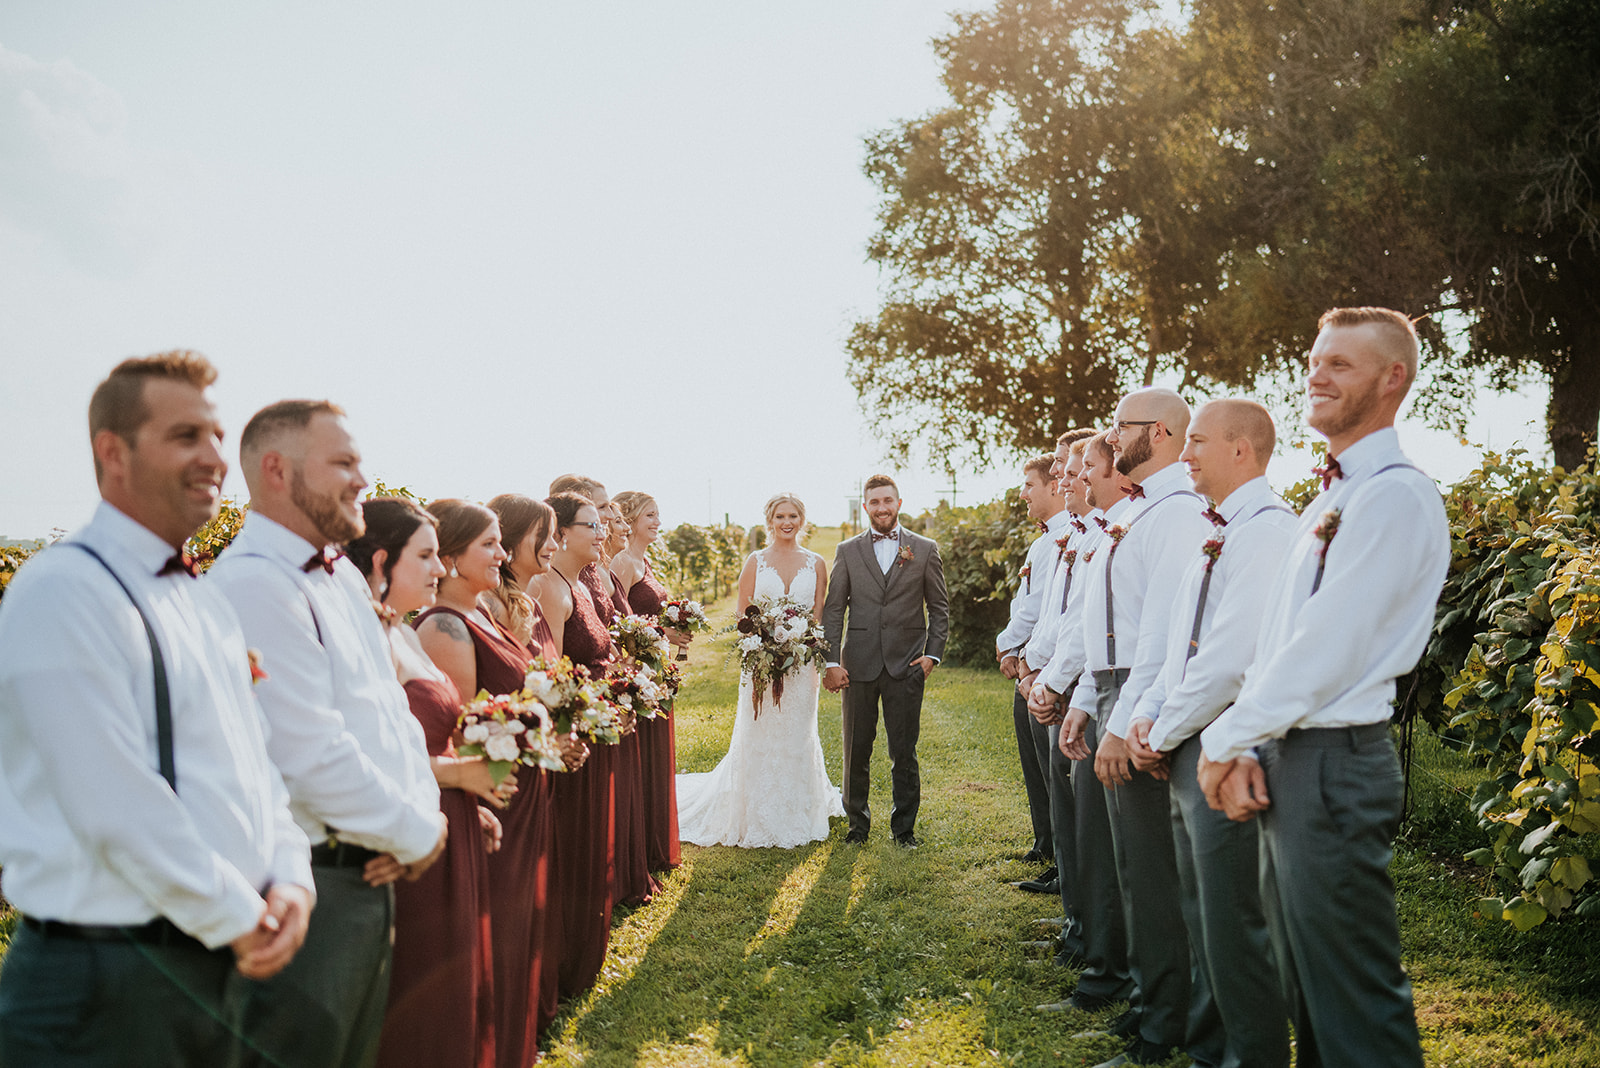 overthevineswisconsinwedding_0838.jpg